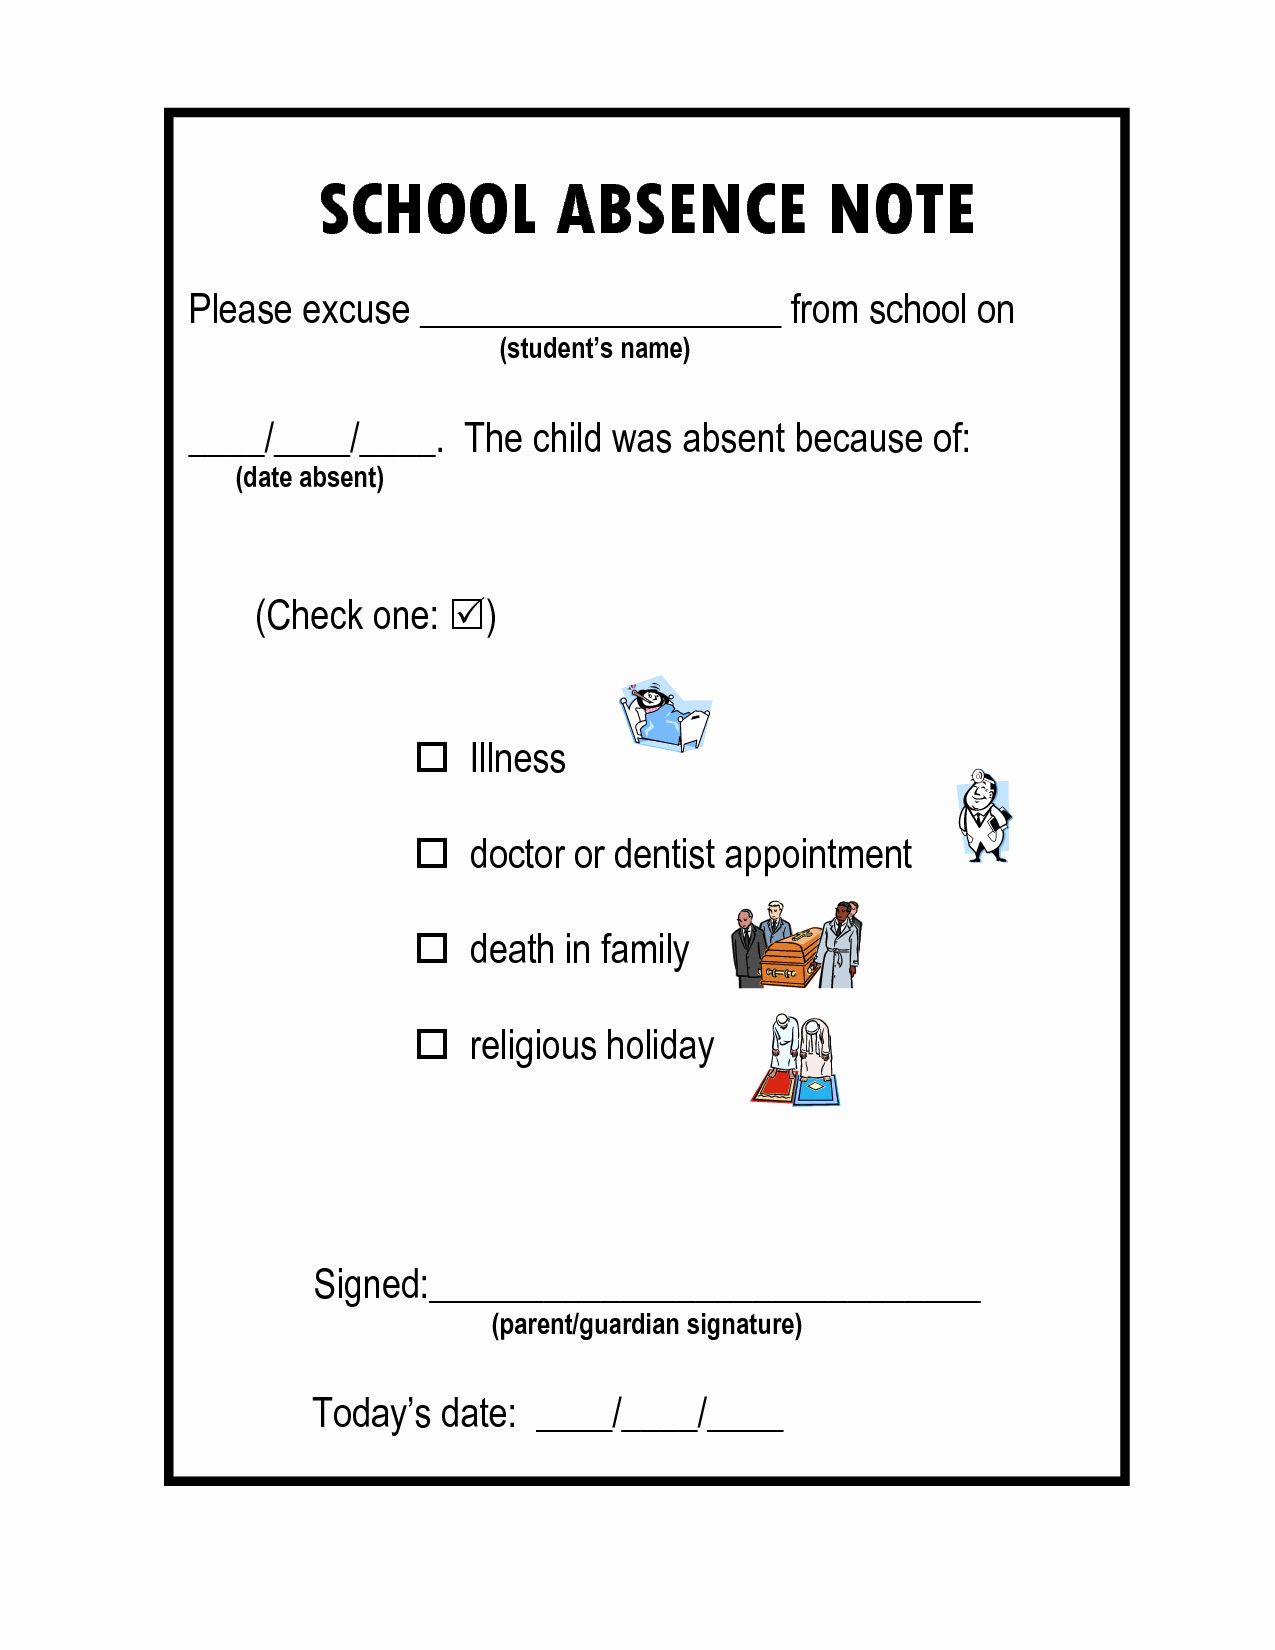 Dr Notes for School Awesome Doctors Note for School Absence Template Xg5zskzk